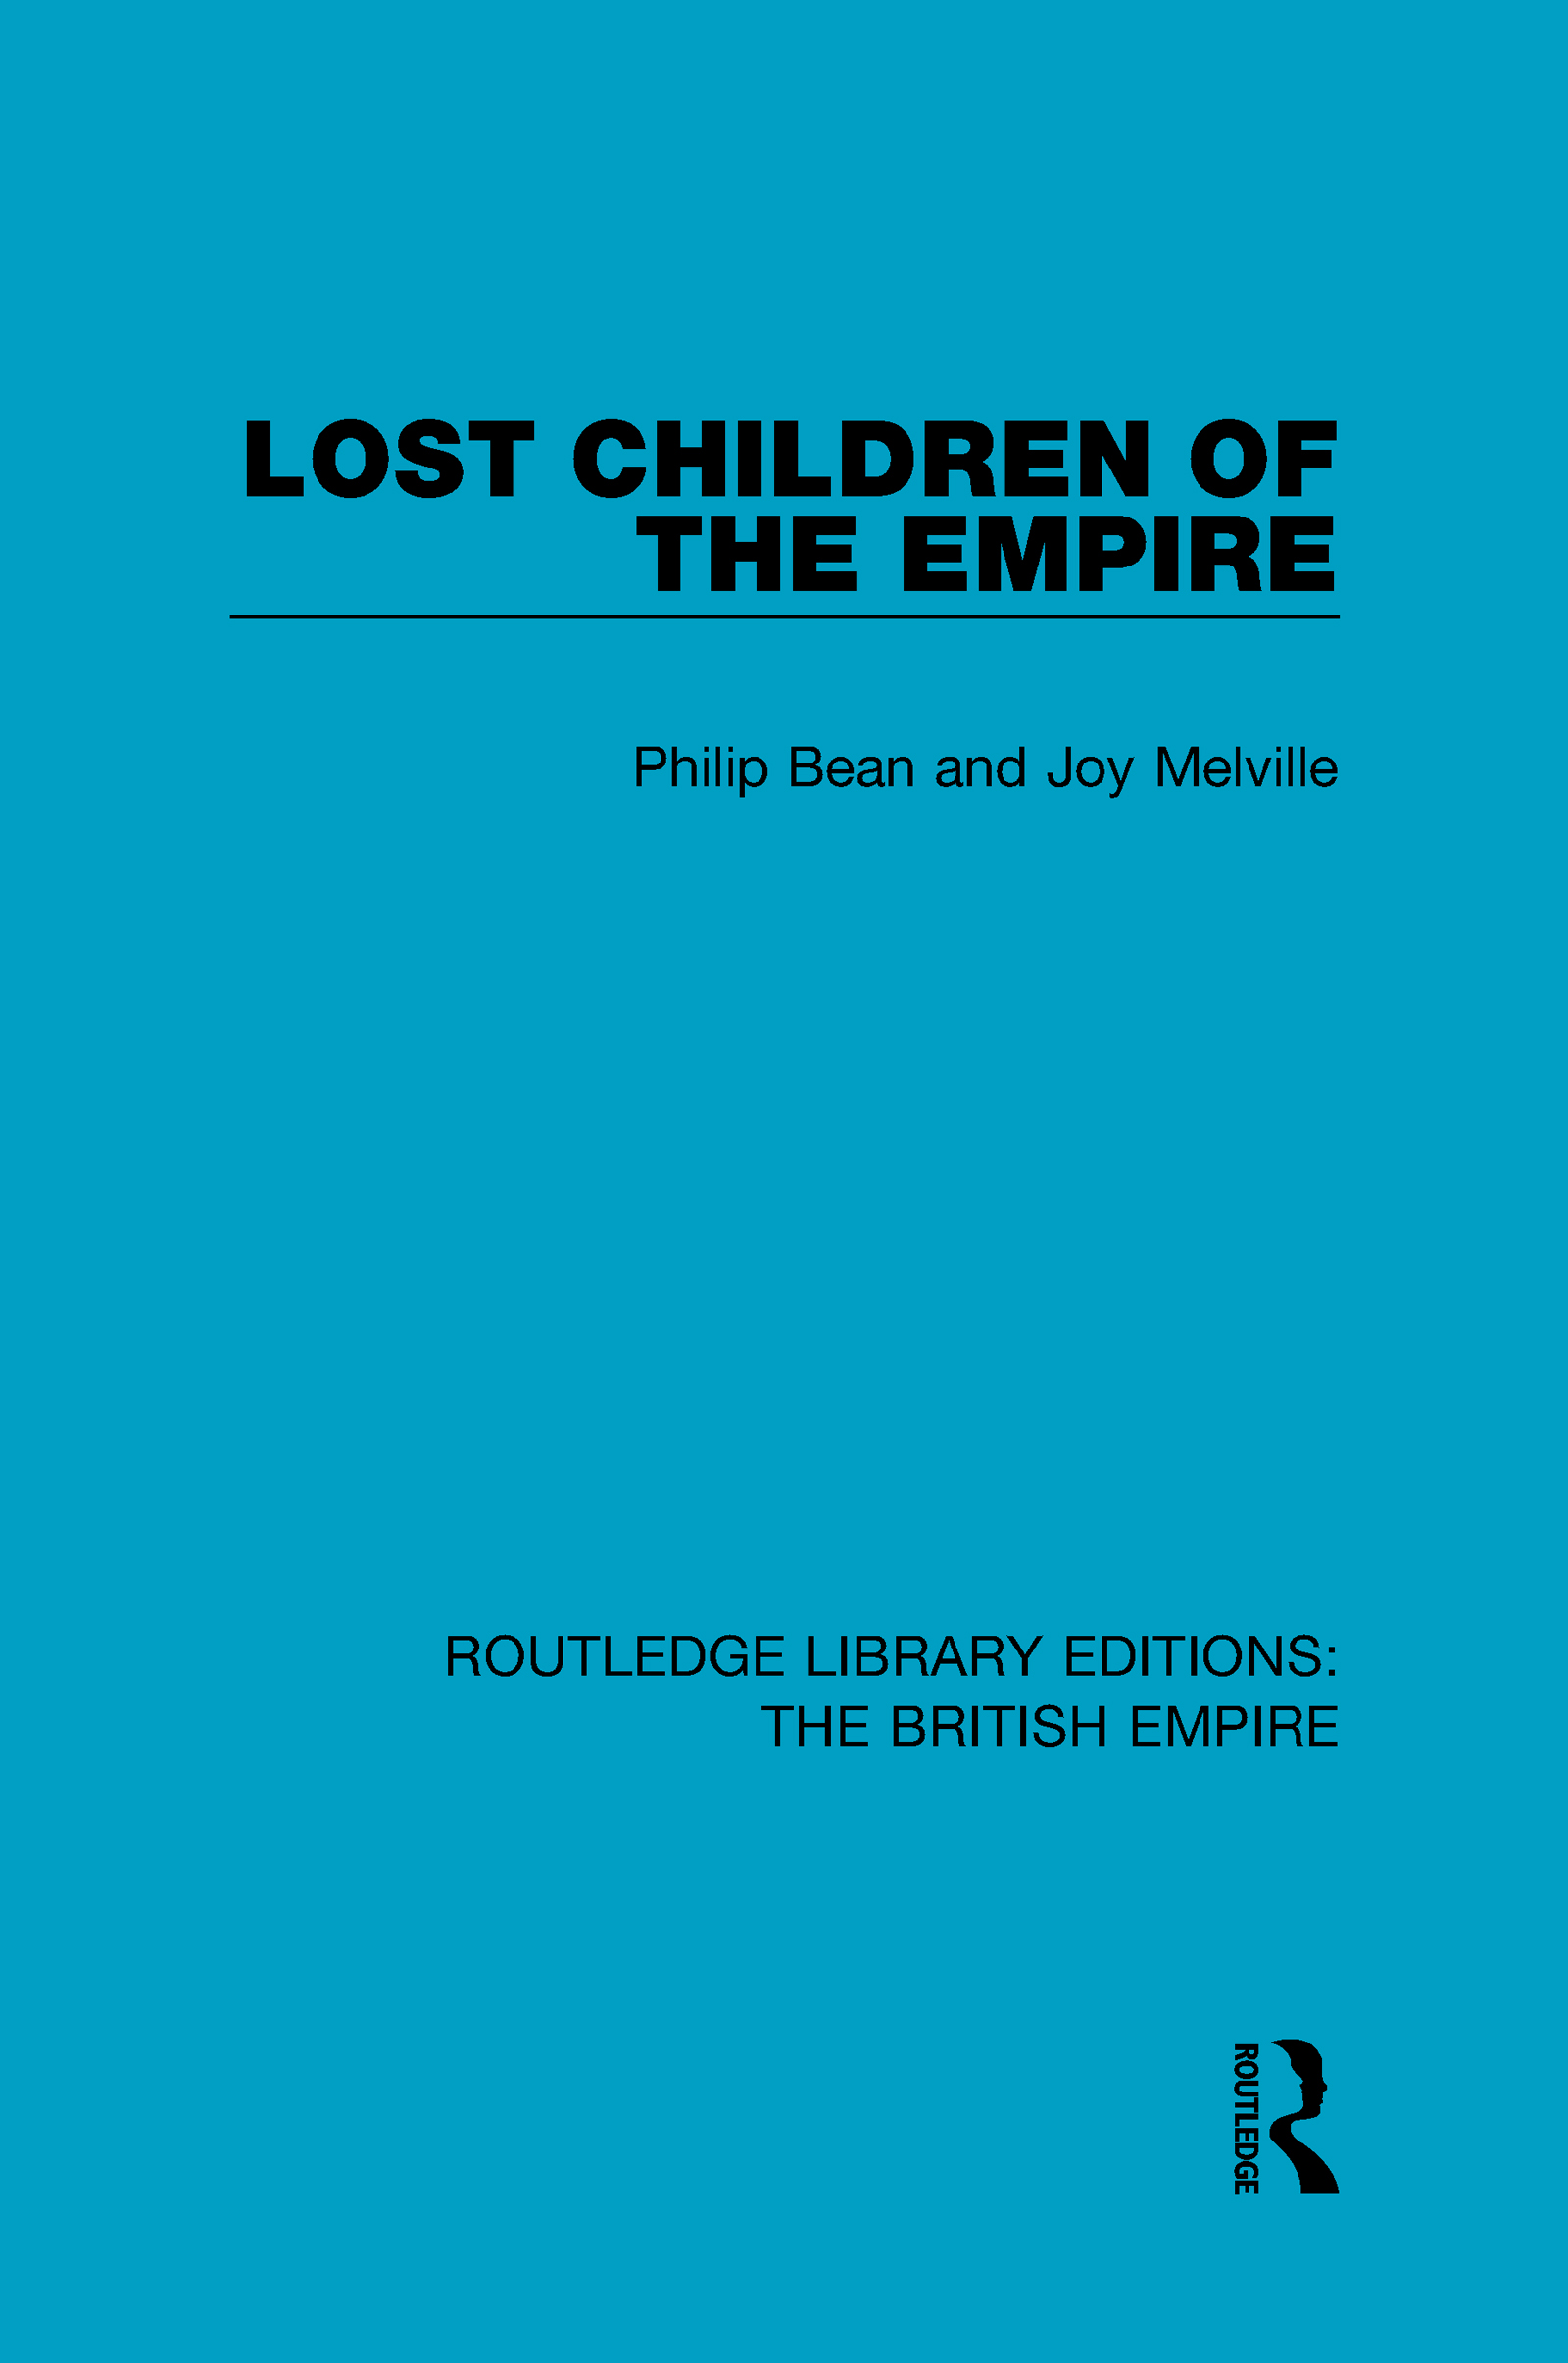 Lost Children of the Empire book cover